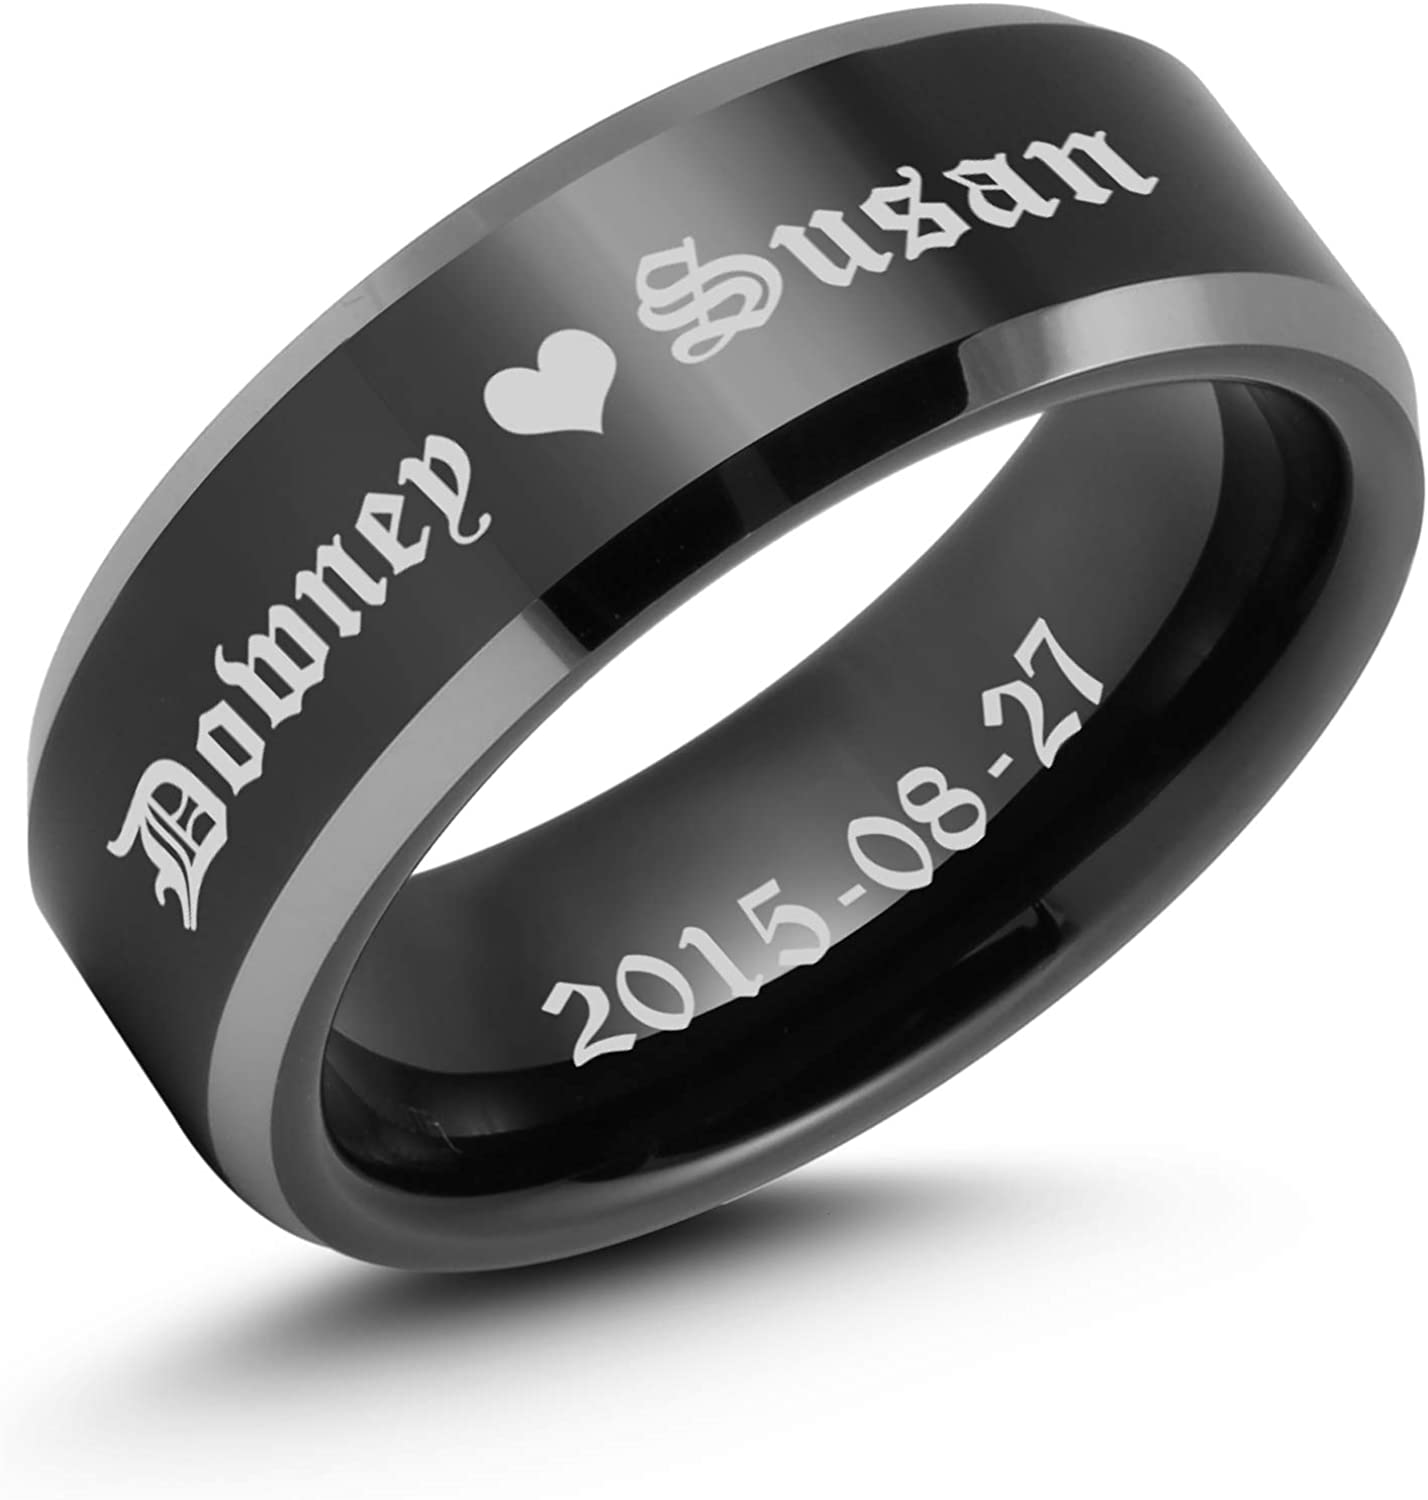 Ulan Moron Men's Rings 8mm Black Tungsten Daily bargain sale Promise Love Max 77% OFF R Carbide